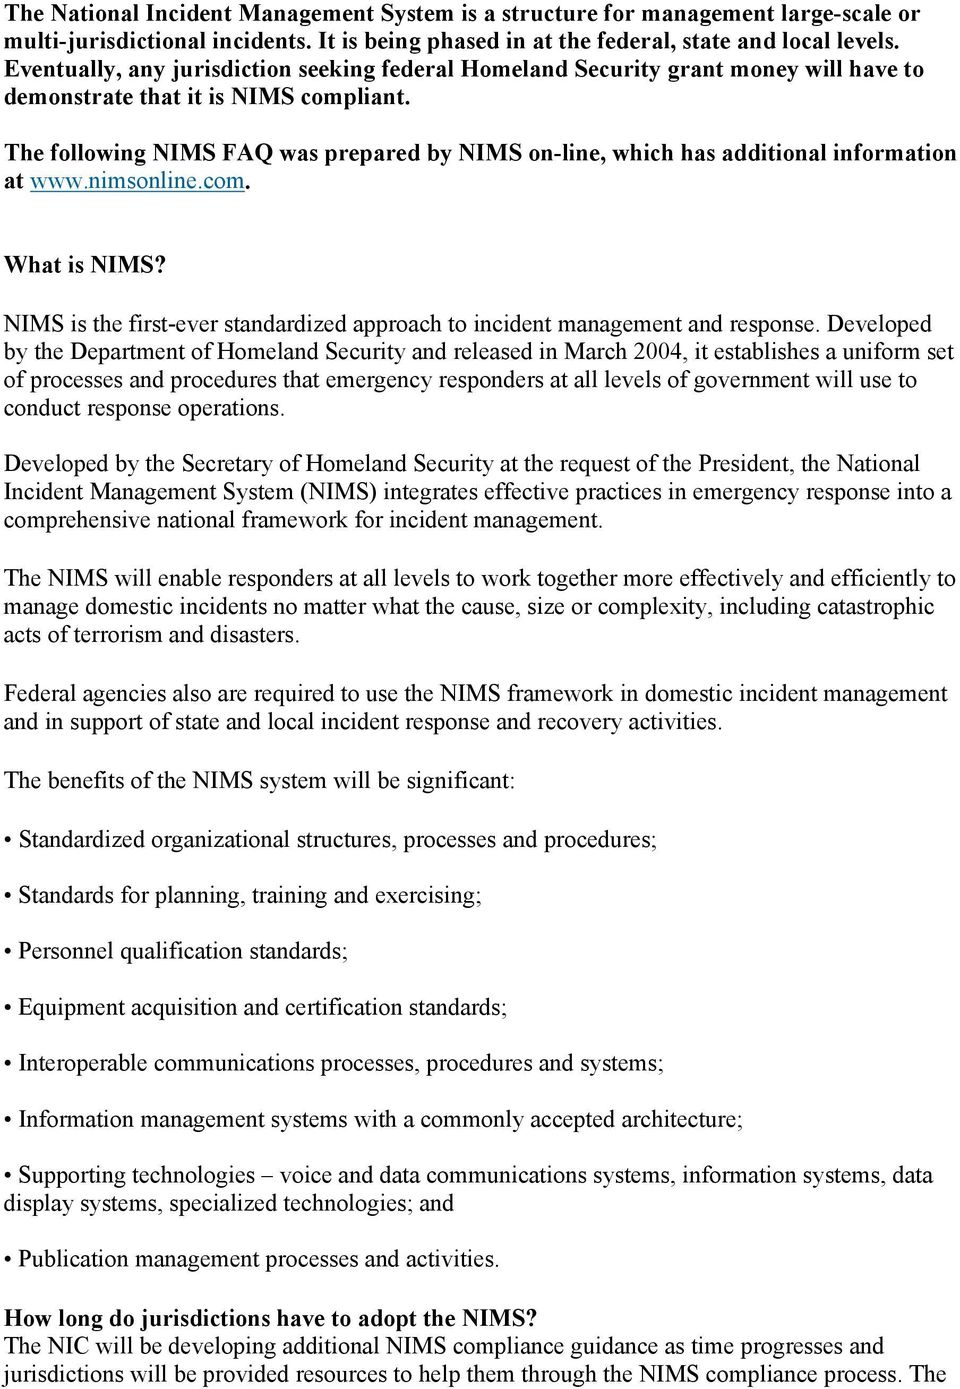 The following NIMS FAQ was prepared by NIMS on-line, which has additional information at www.nimsonline.com. What is NIMS?